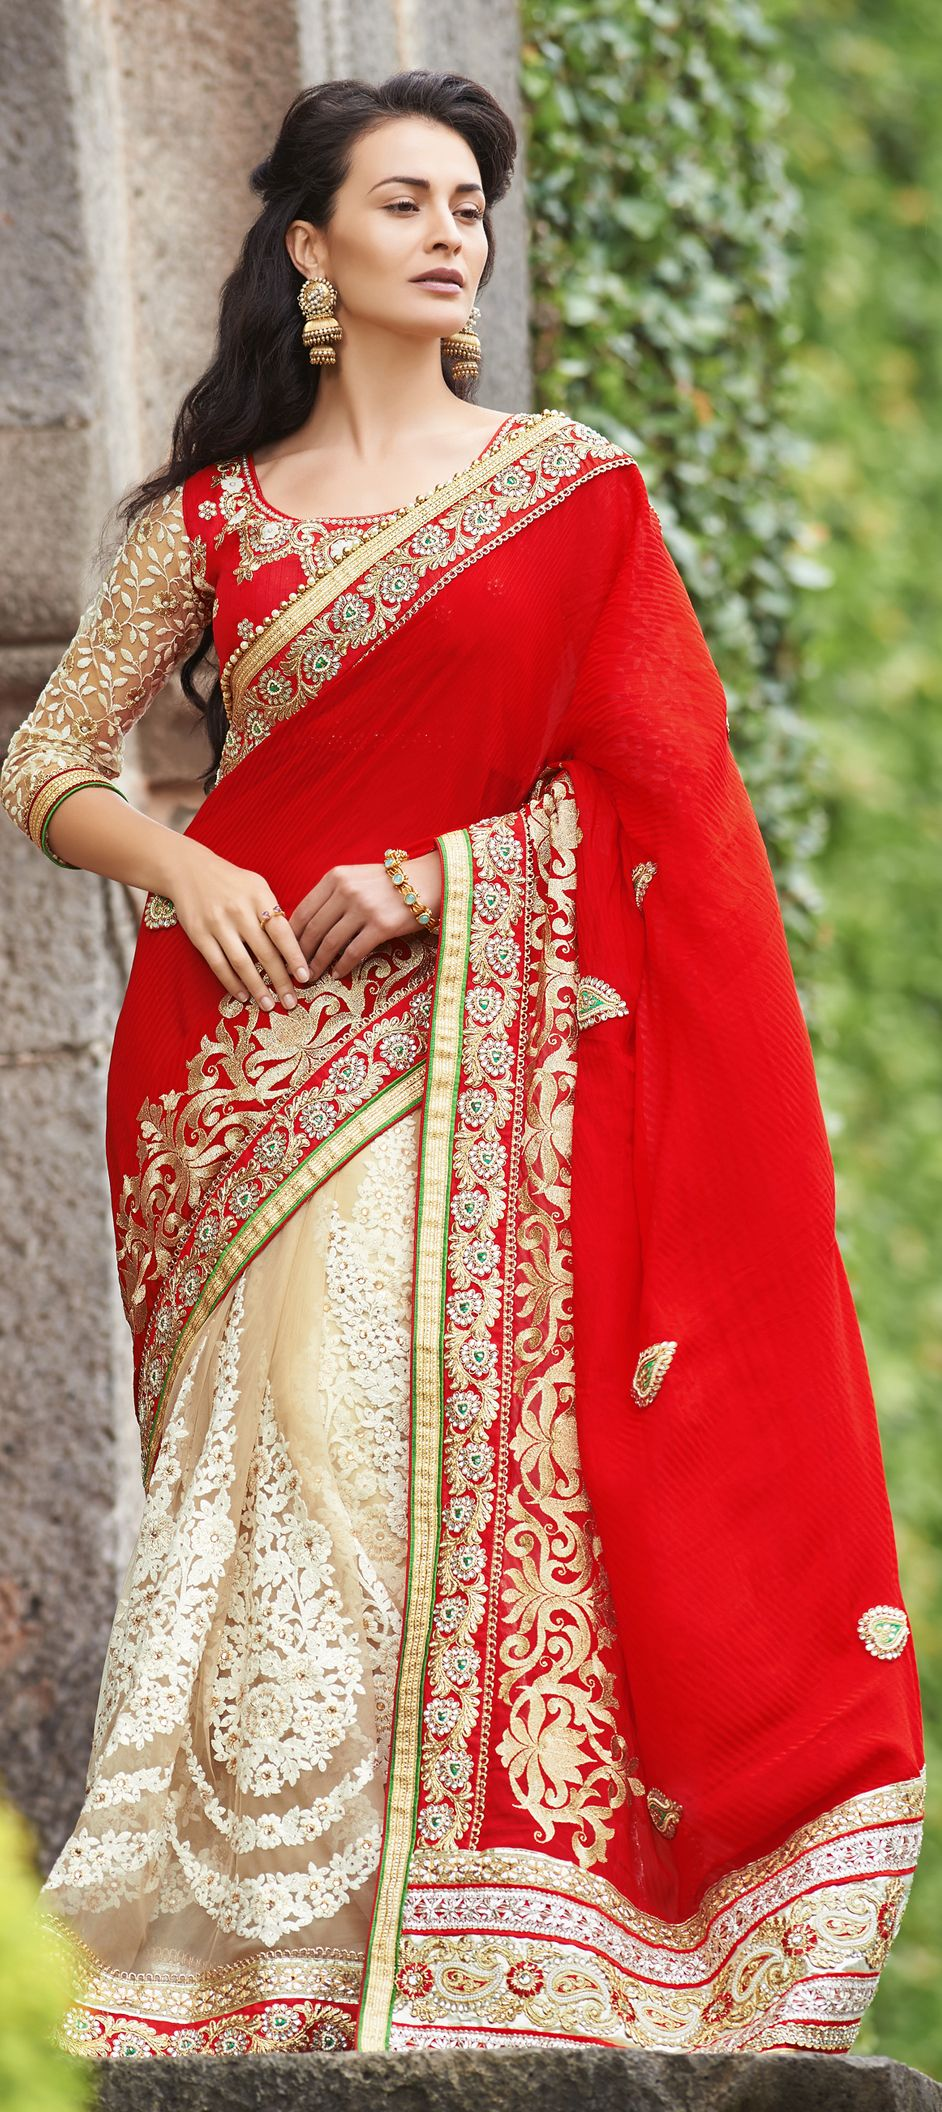 150140: Red and Maroon, Beige and Brown color family Saree with ...